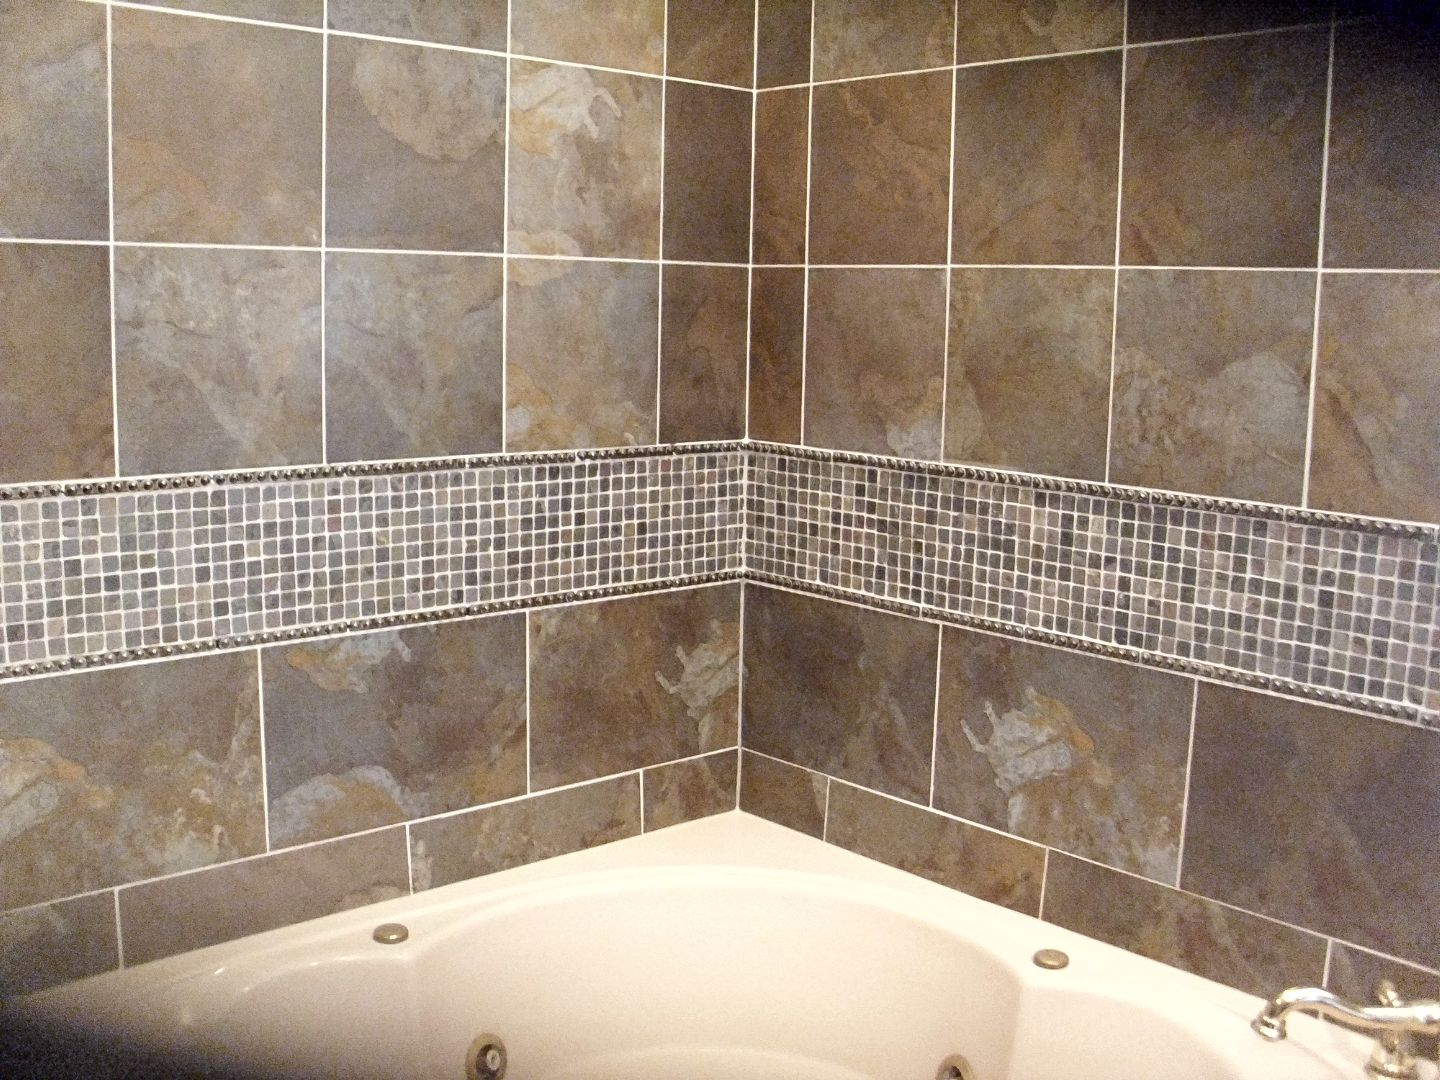 tile tub surround tile tub surround shower vanity backsplash superior stone - Bathroom Tile Ideas For Tub Surround